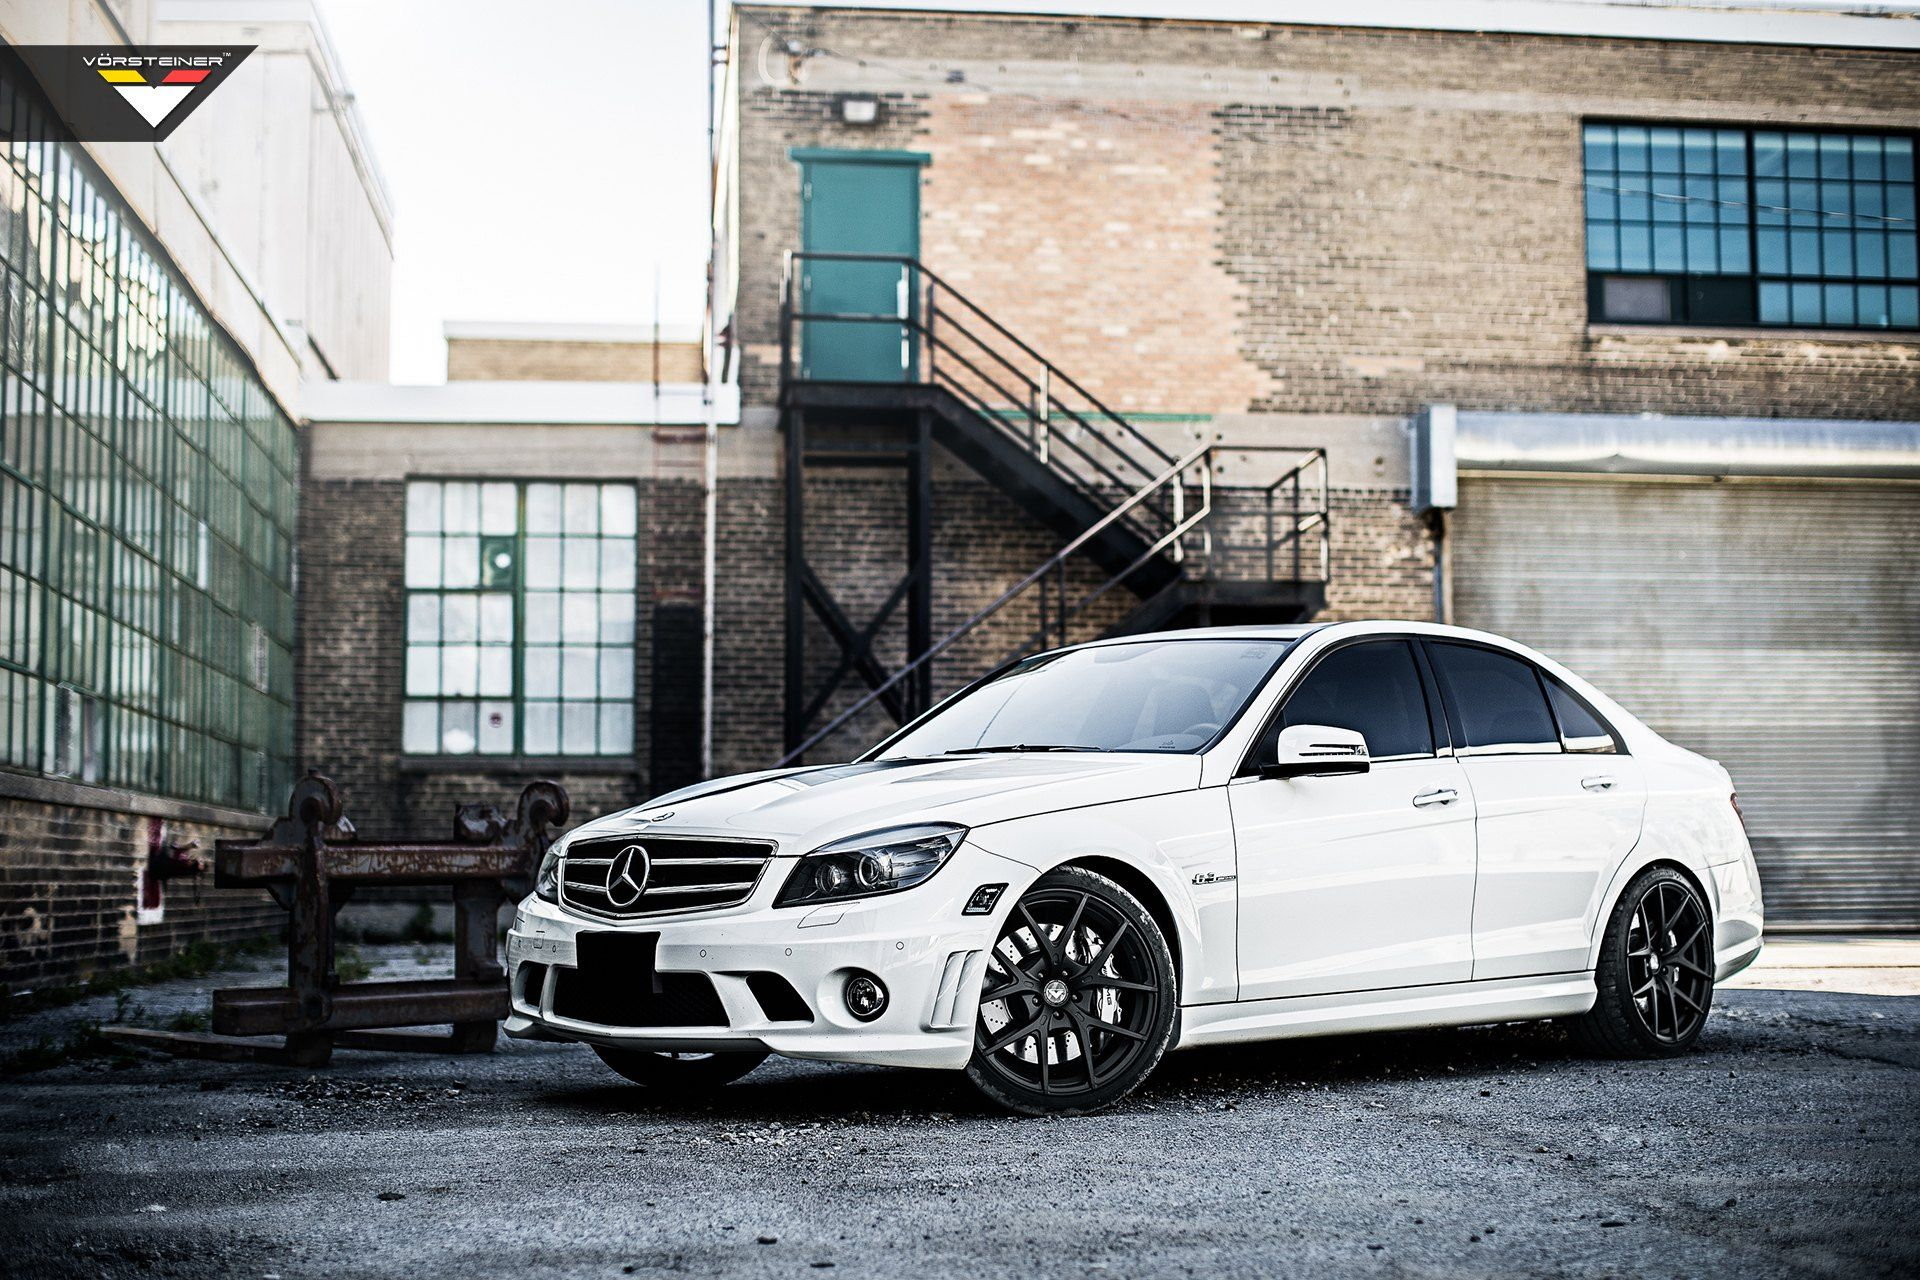 White Mercedes C Class Gets A Distinctive Appearance With Custom